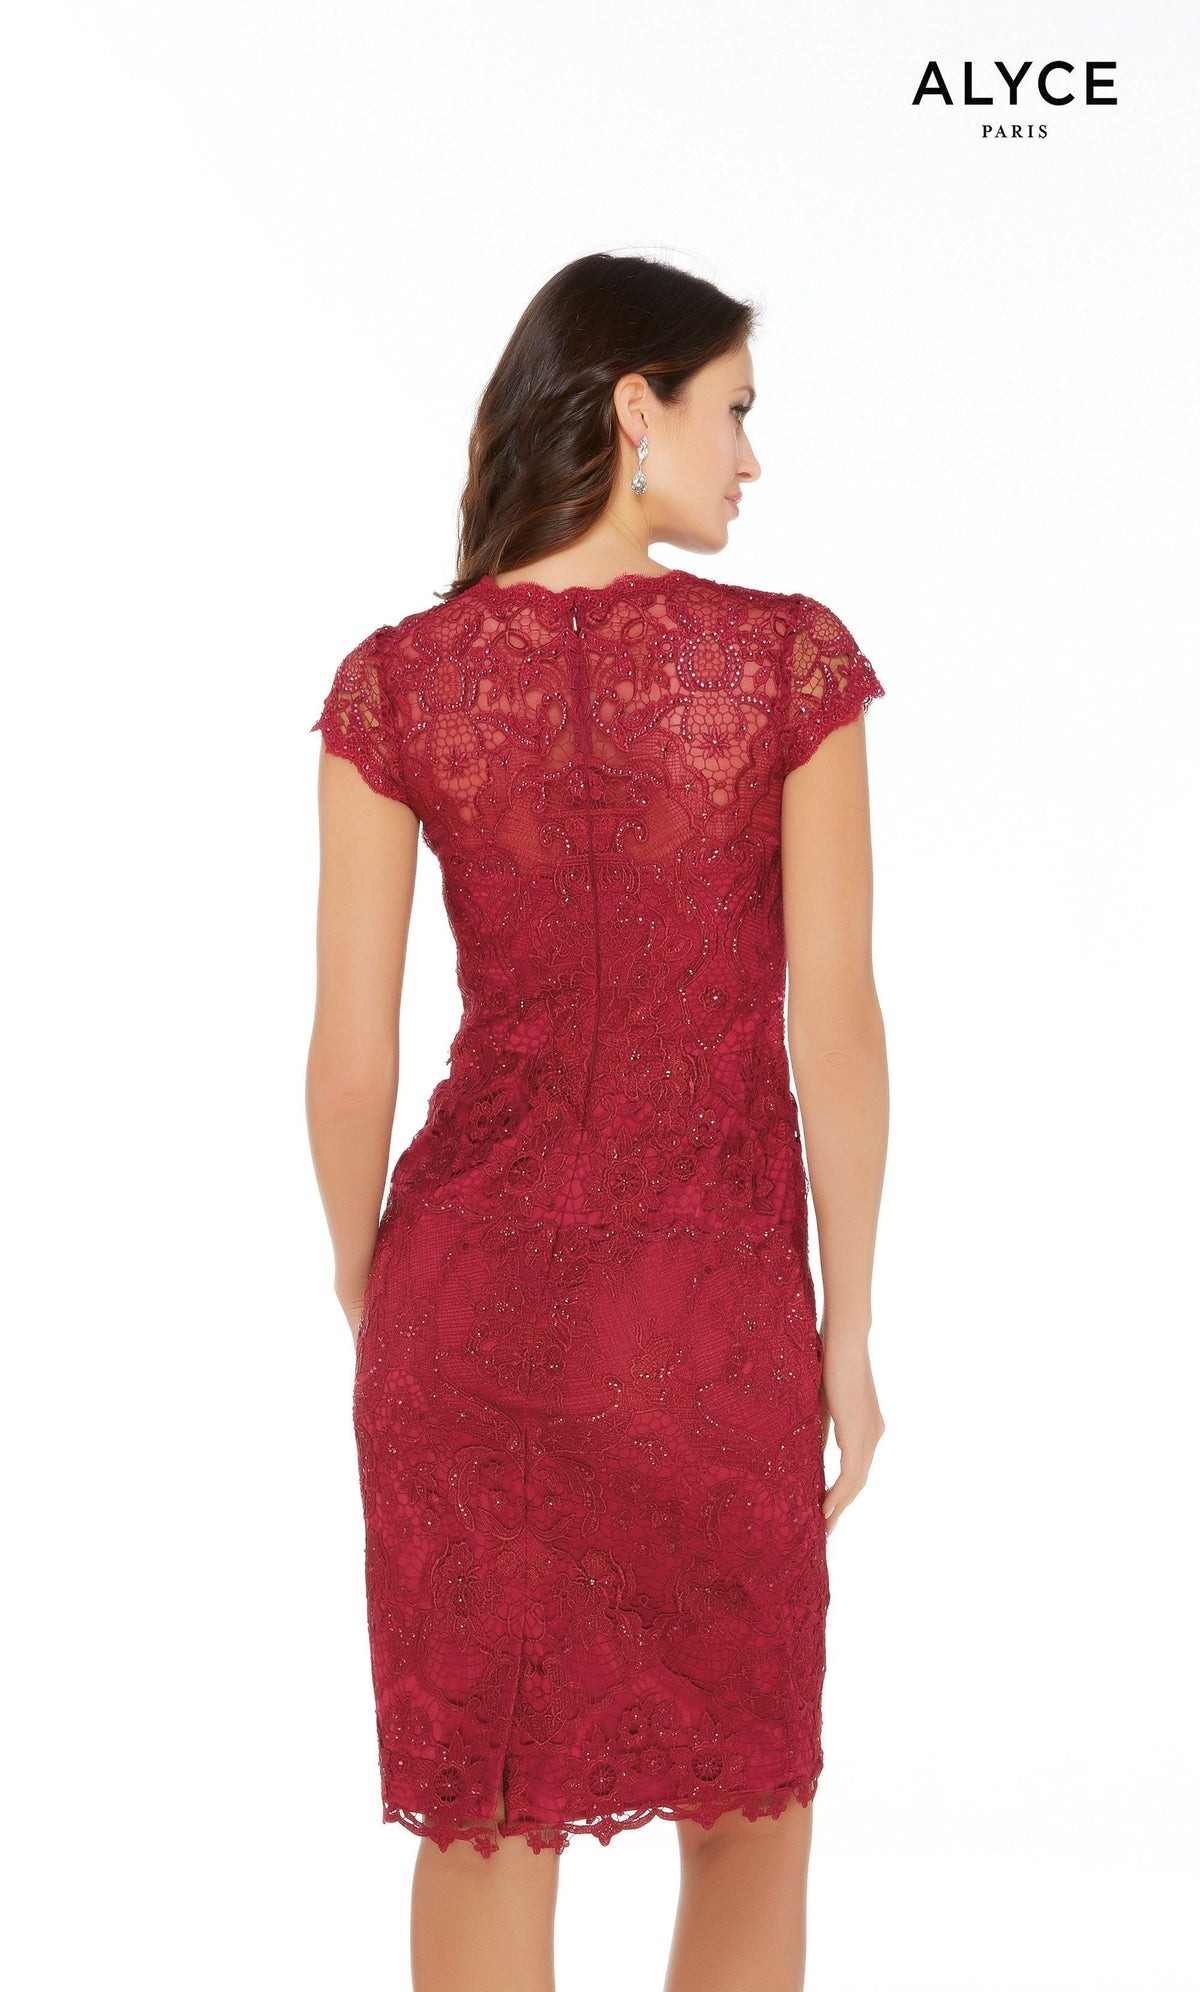 Dark red lace knee length designer mother of the bride dress with an enclosed back and cap sleeves